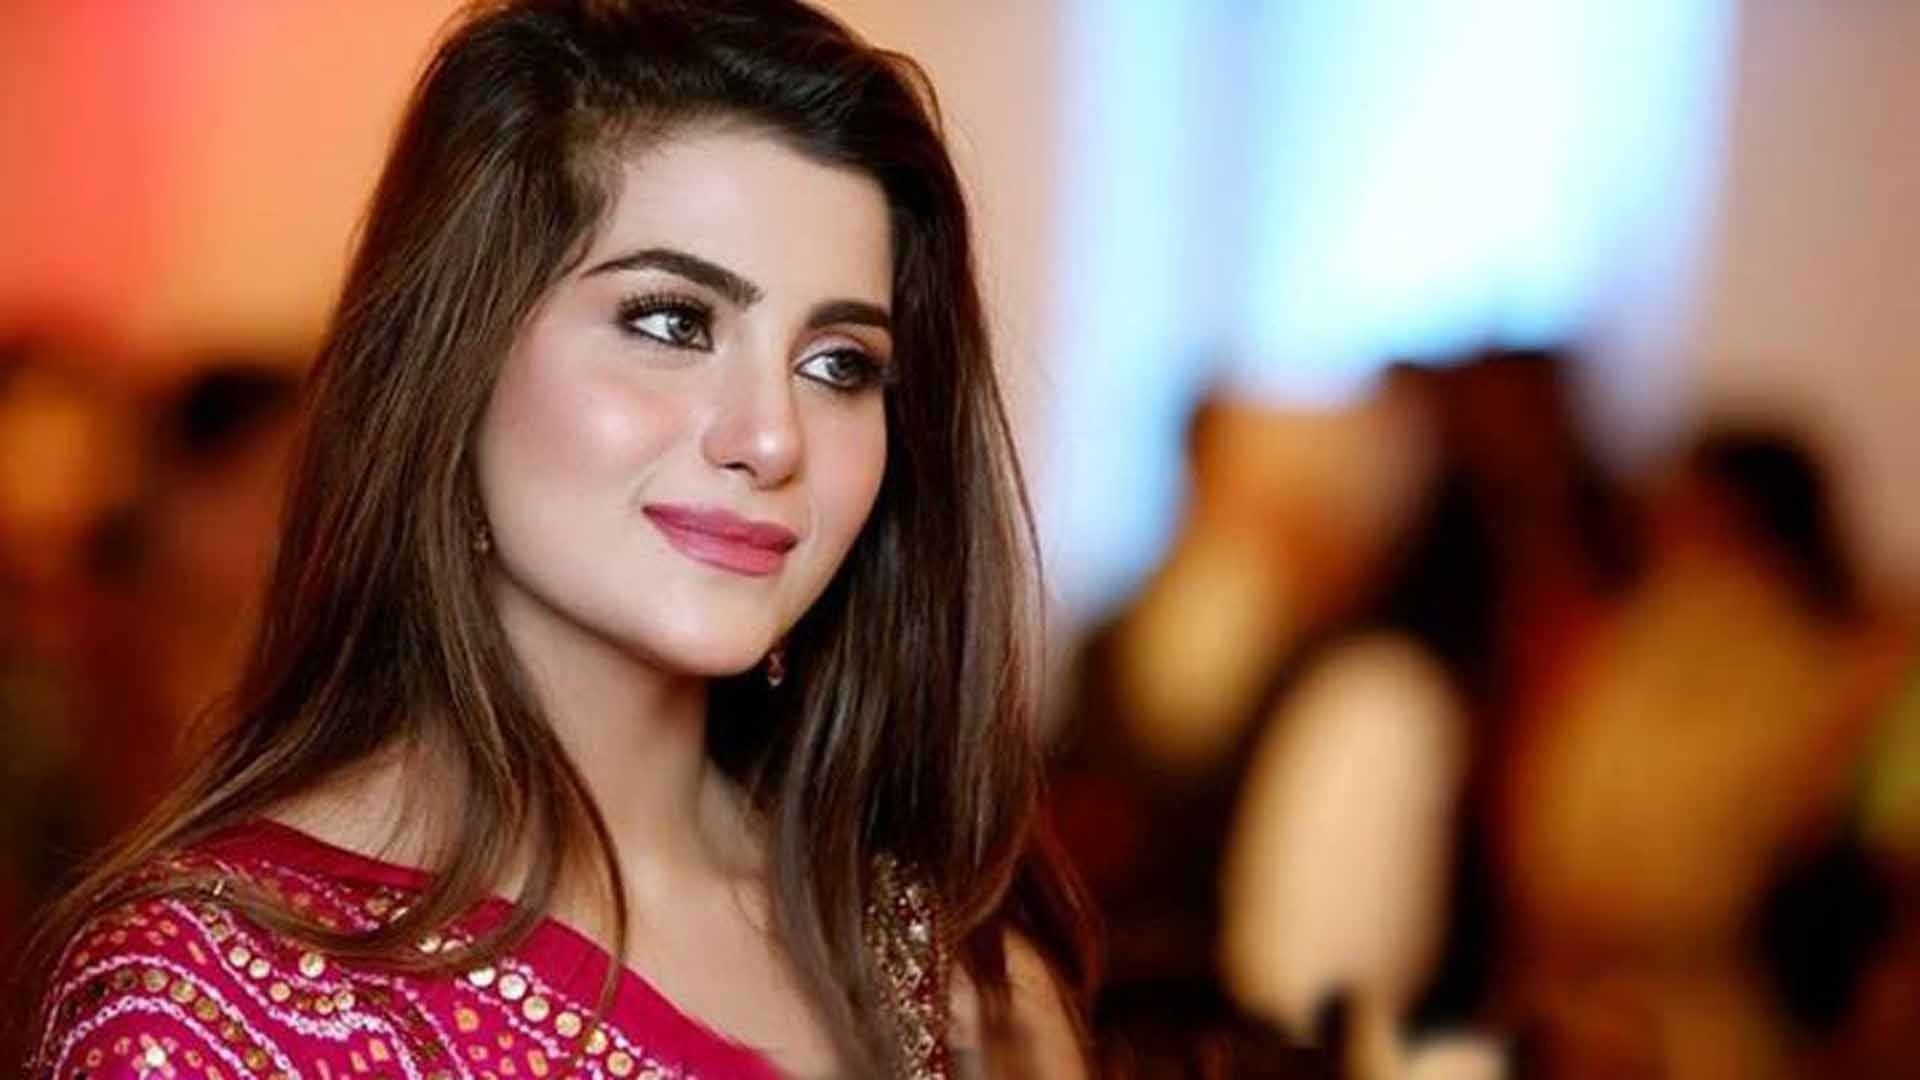 Res: 1920x1080, Pakistani Girls Images Pictures HD Wallpapers